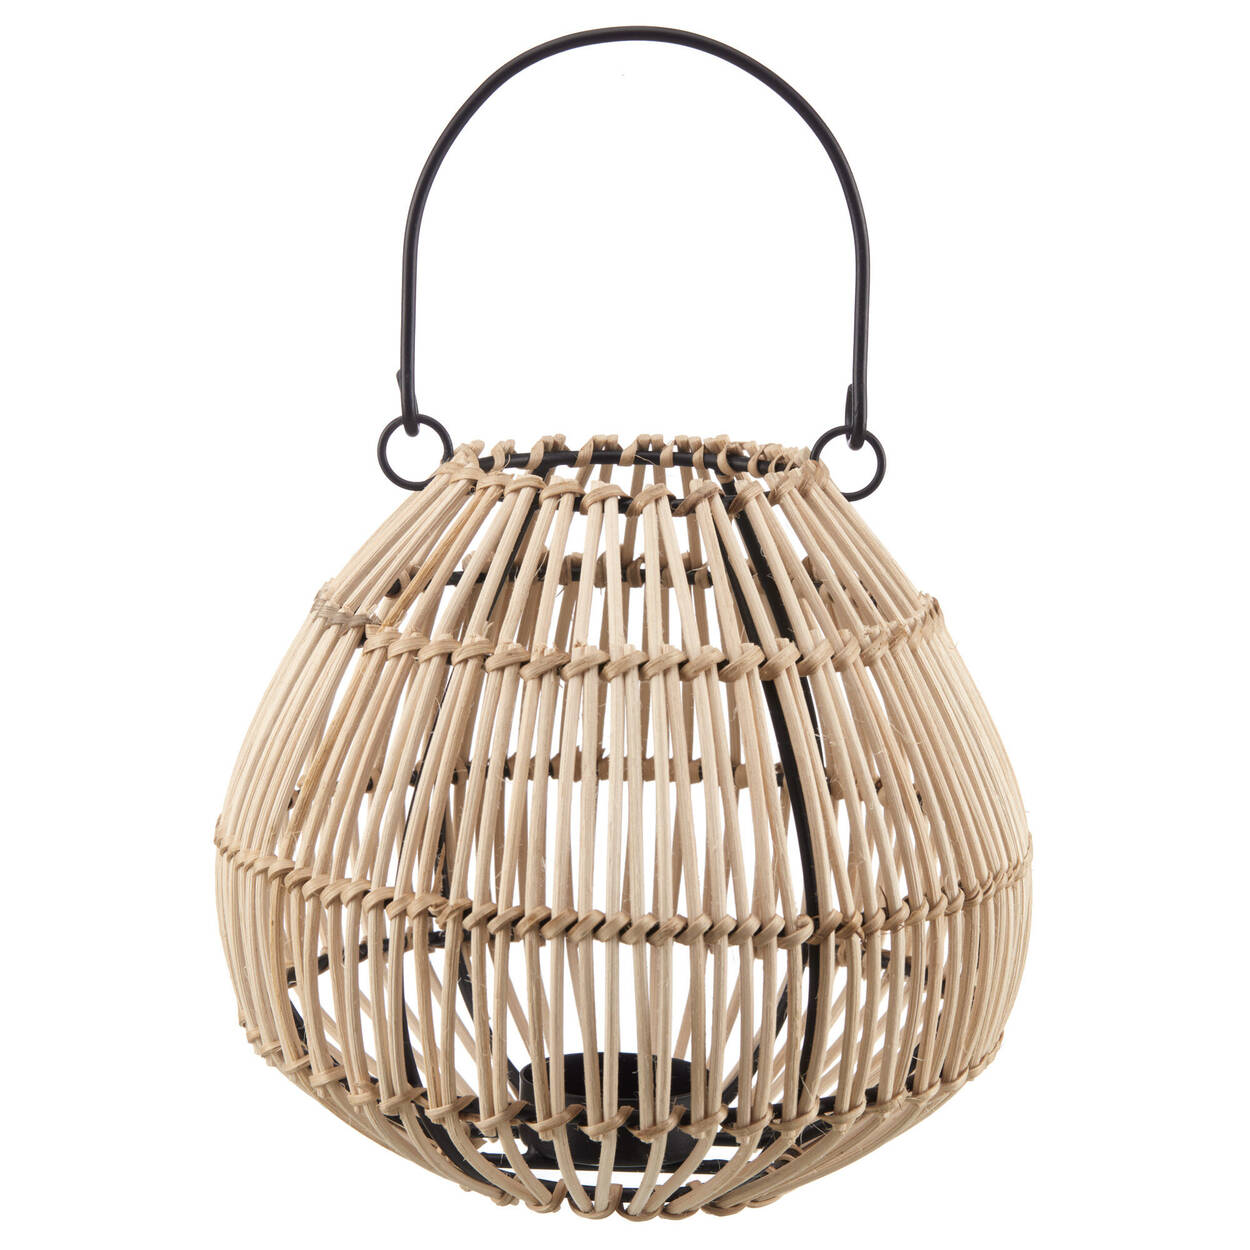 Rattan Decorative Lantern Ball